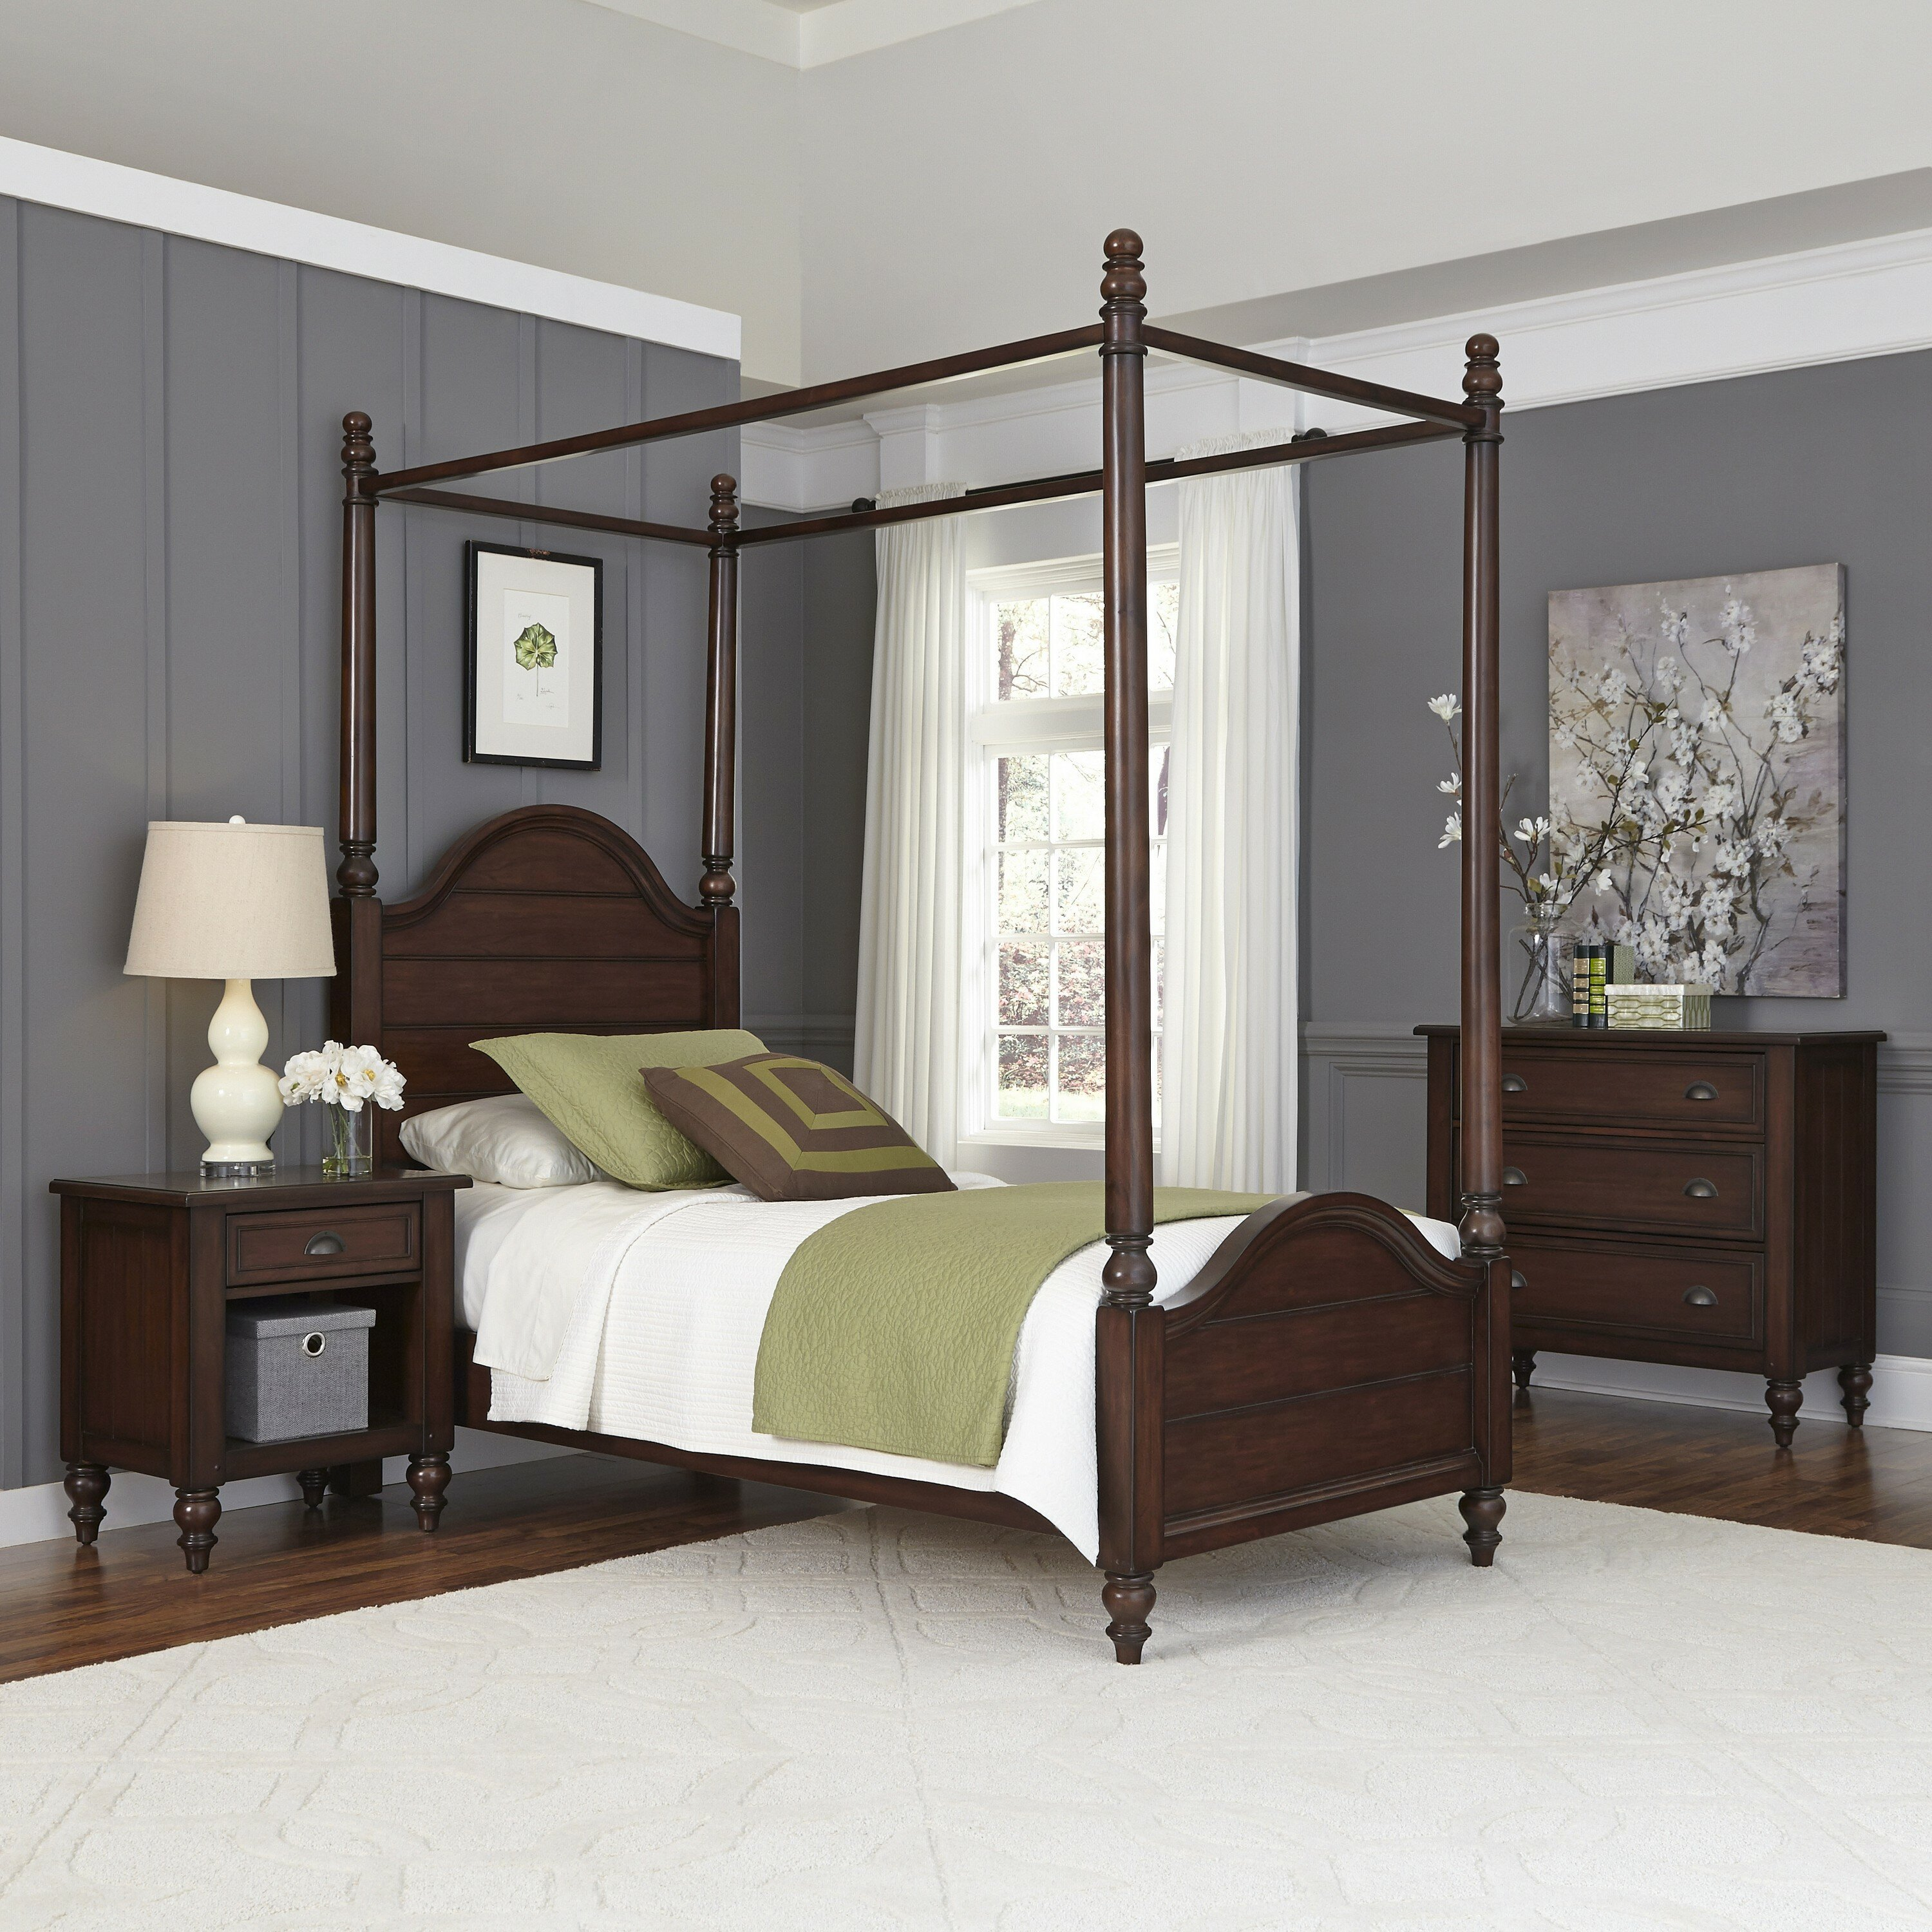 Country Bedroom Sets: Home Styles Country Comfort Canopy 3 Piece Bedroom Set